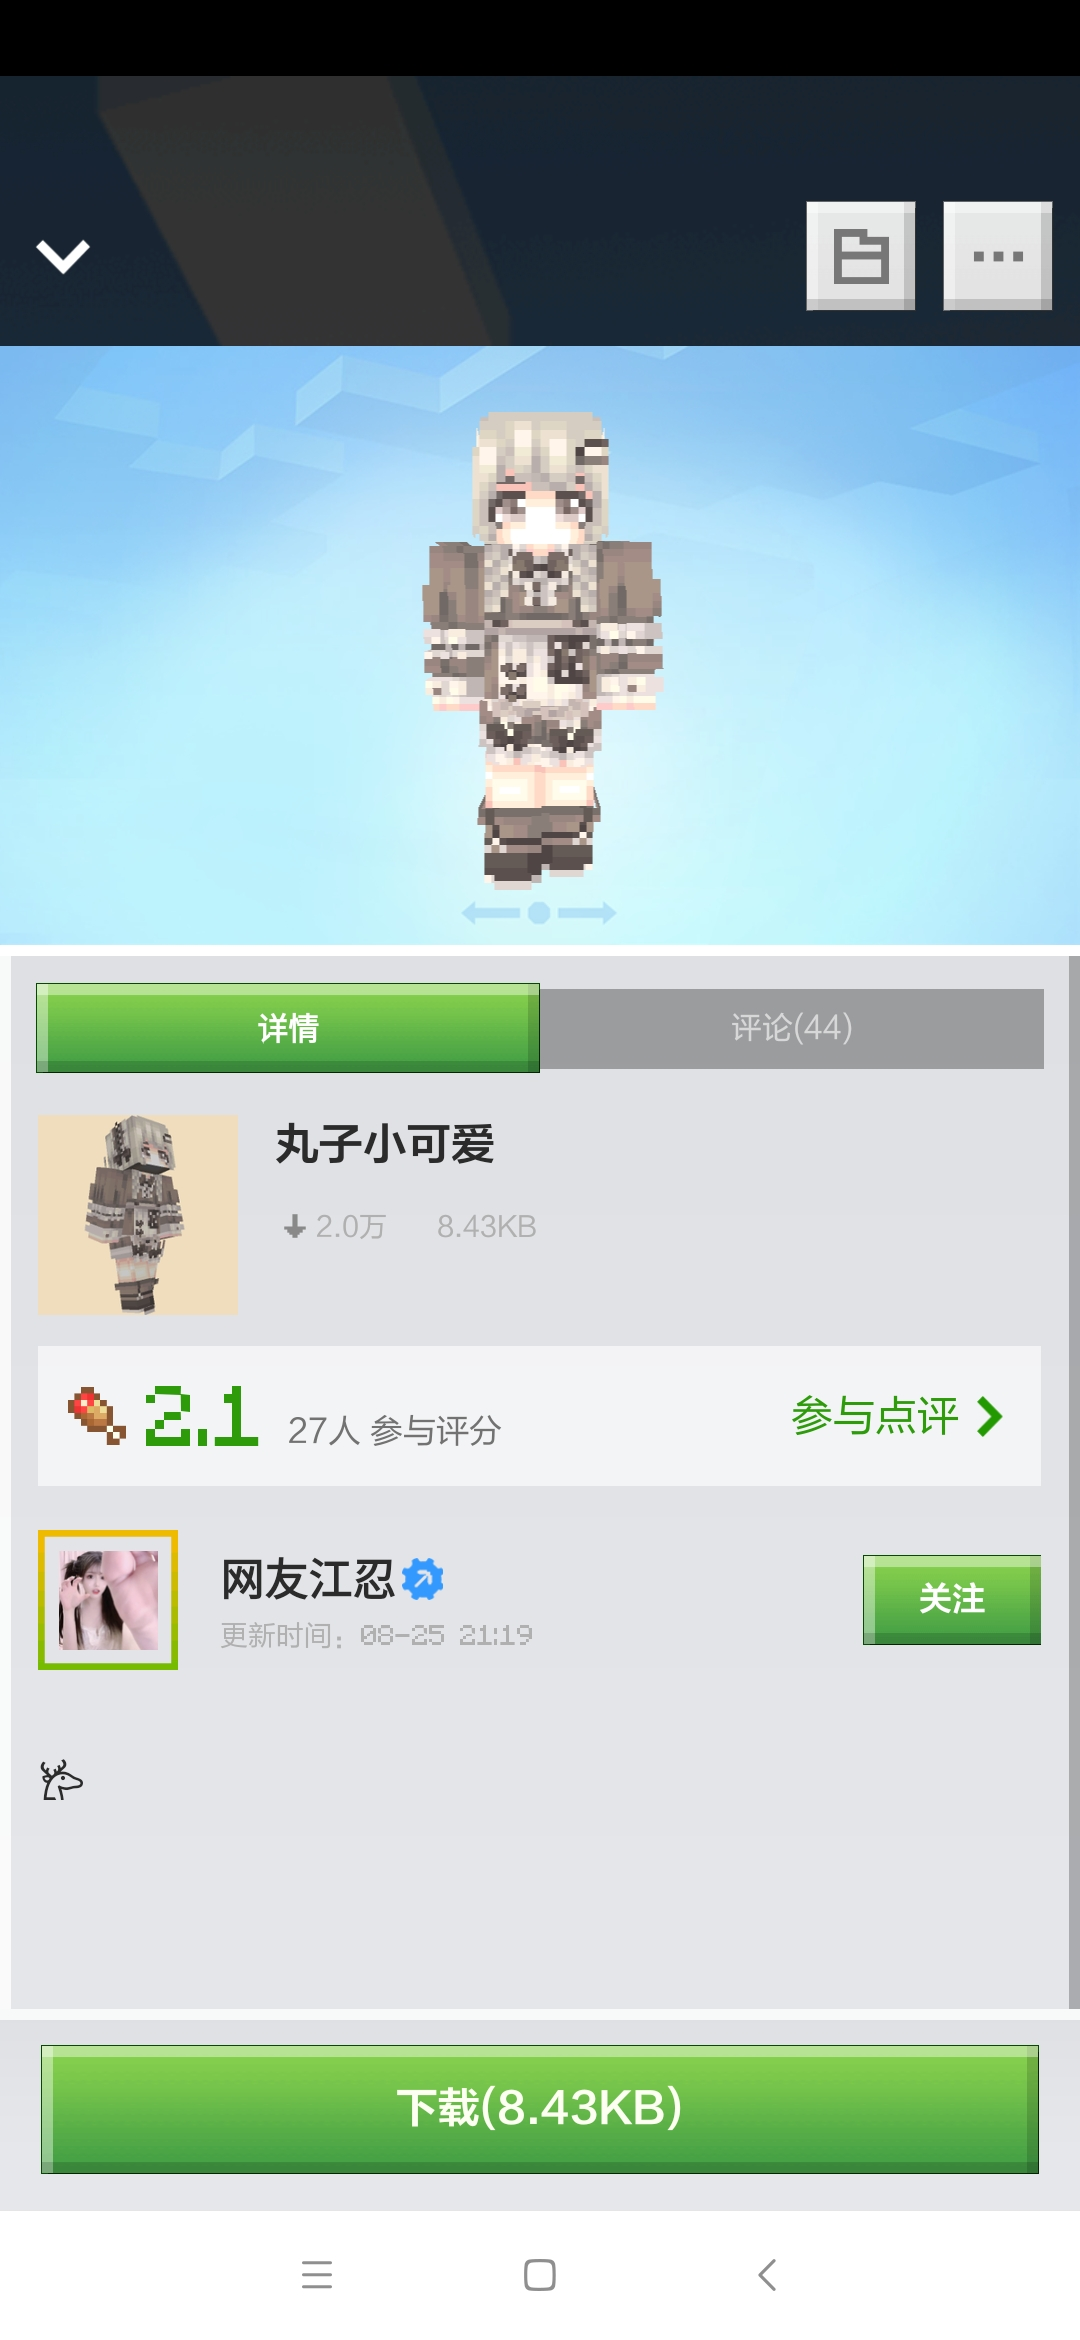 Screenshot_2020-08-27-11-12-26-694_com.netease.x19.jpg